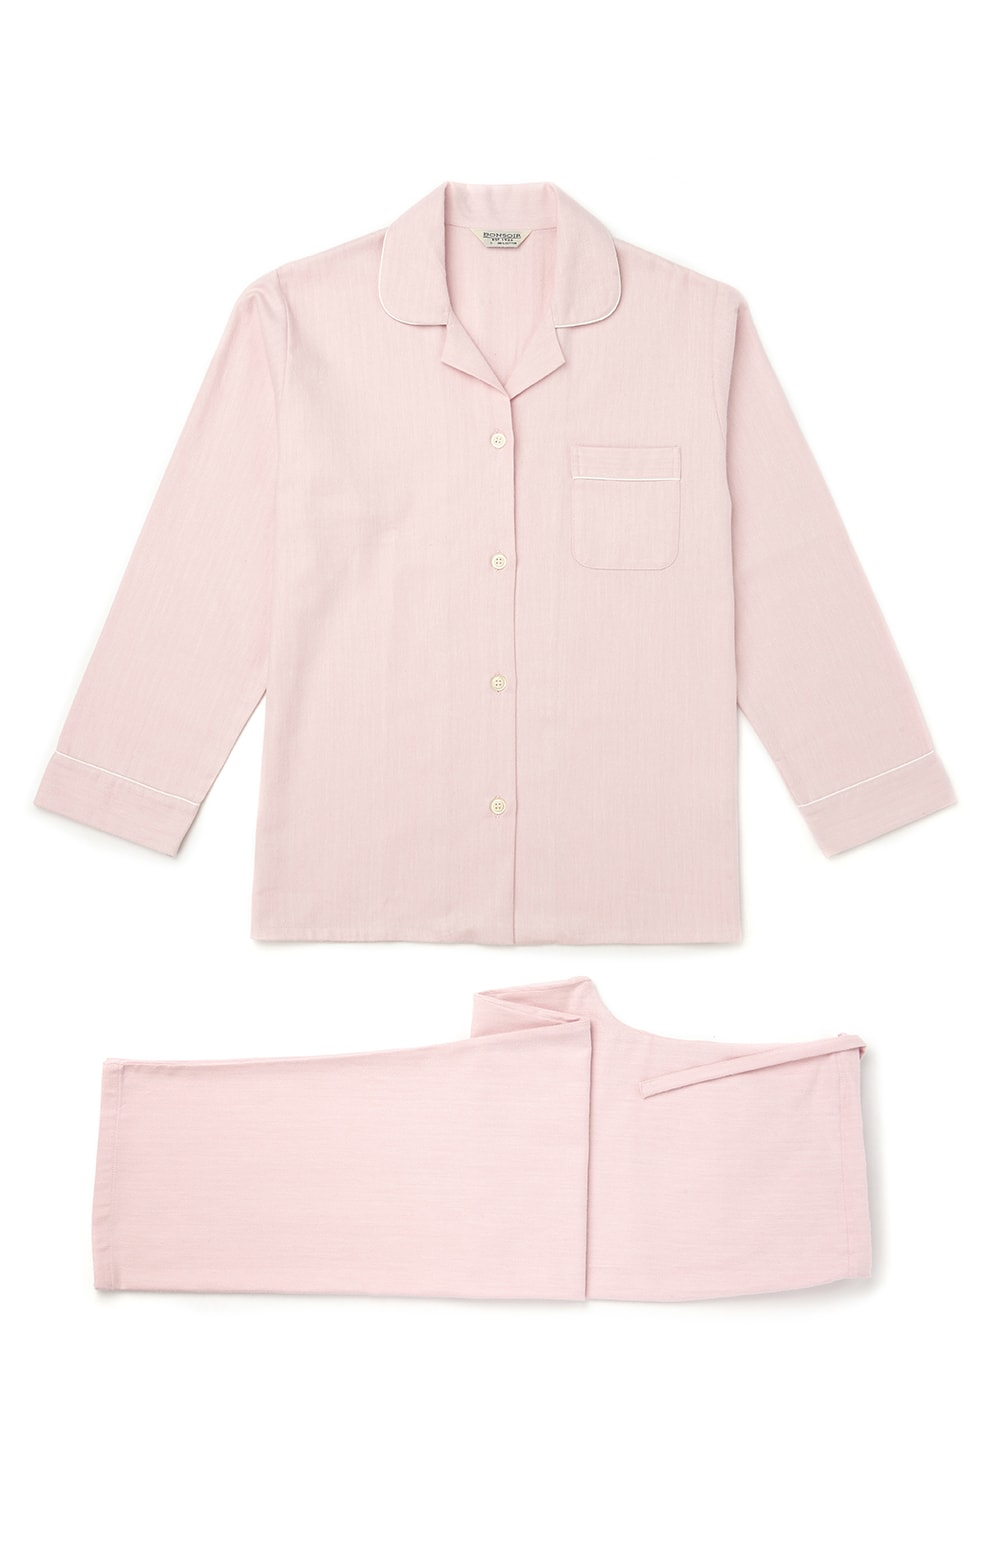 Brushed Pastel Pyjamas (blps) - Pink Herringbone | Bonsoir of London